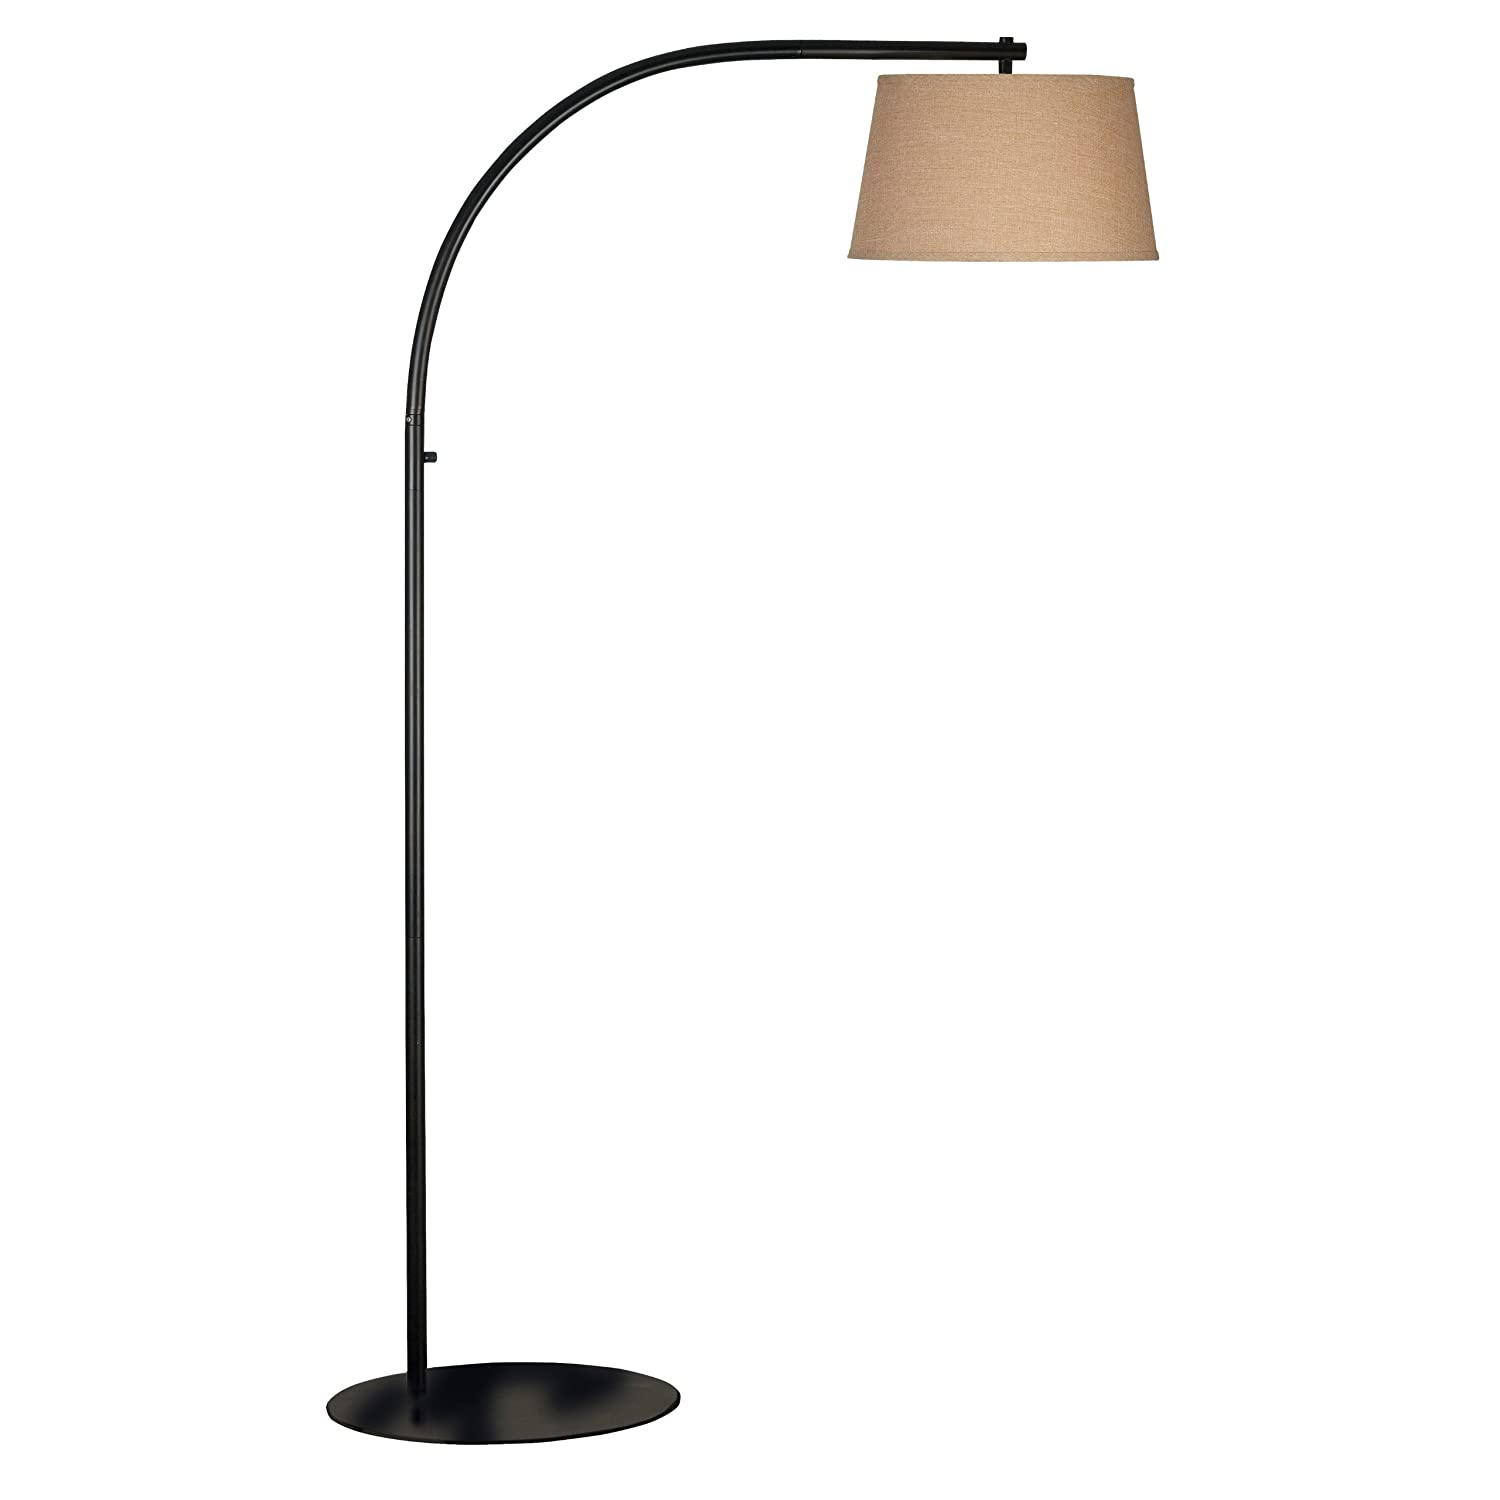 Kenroy home 20953orb sweep floor lamp oil rubbed bronze close to kenroy home 20953orb sweep floor lamp oil rubbed bronze close to ceiling light fixtures amazon aloadofball Image collections